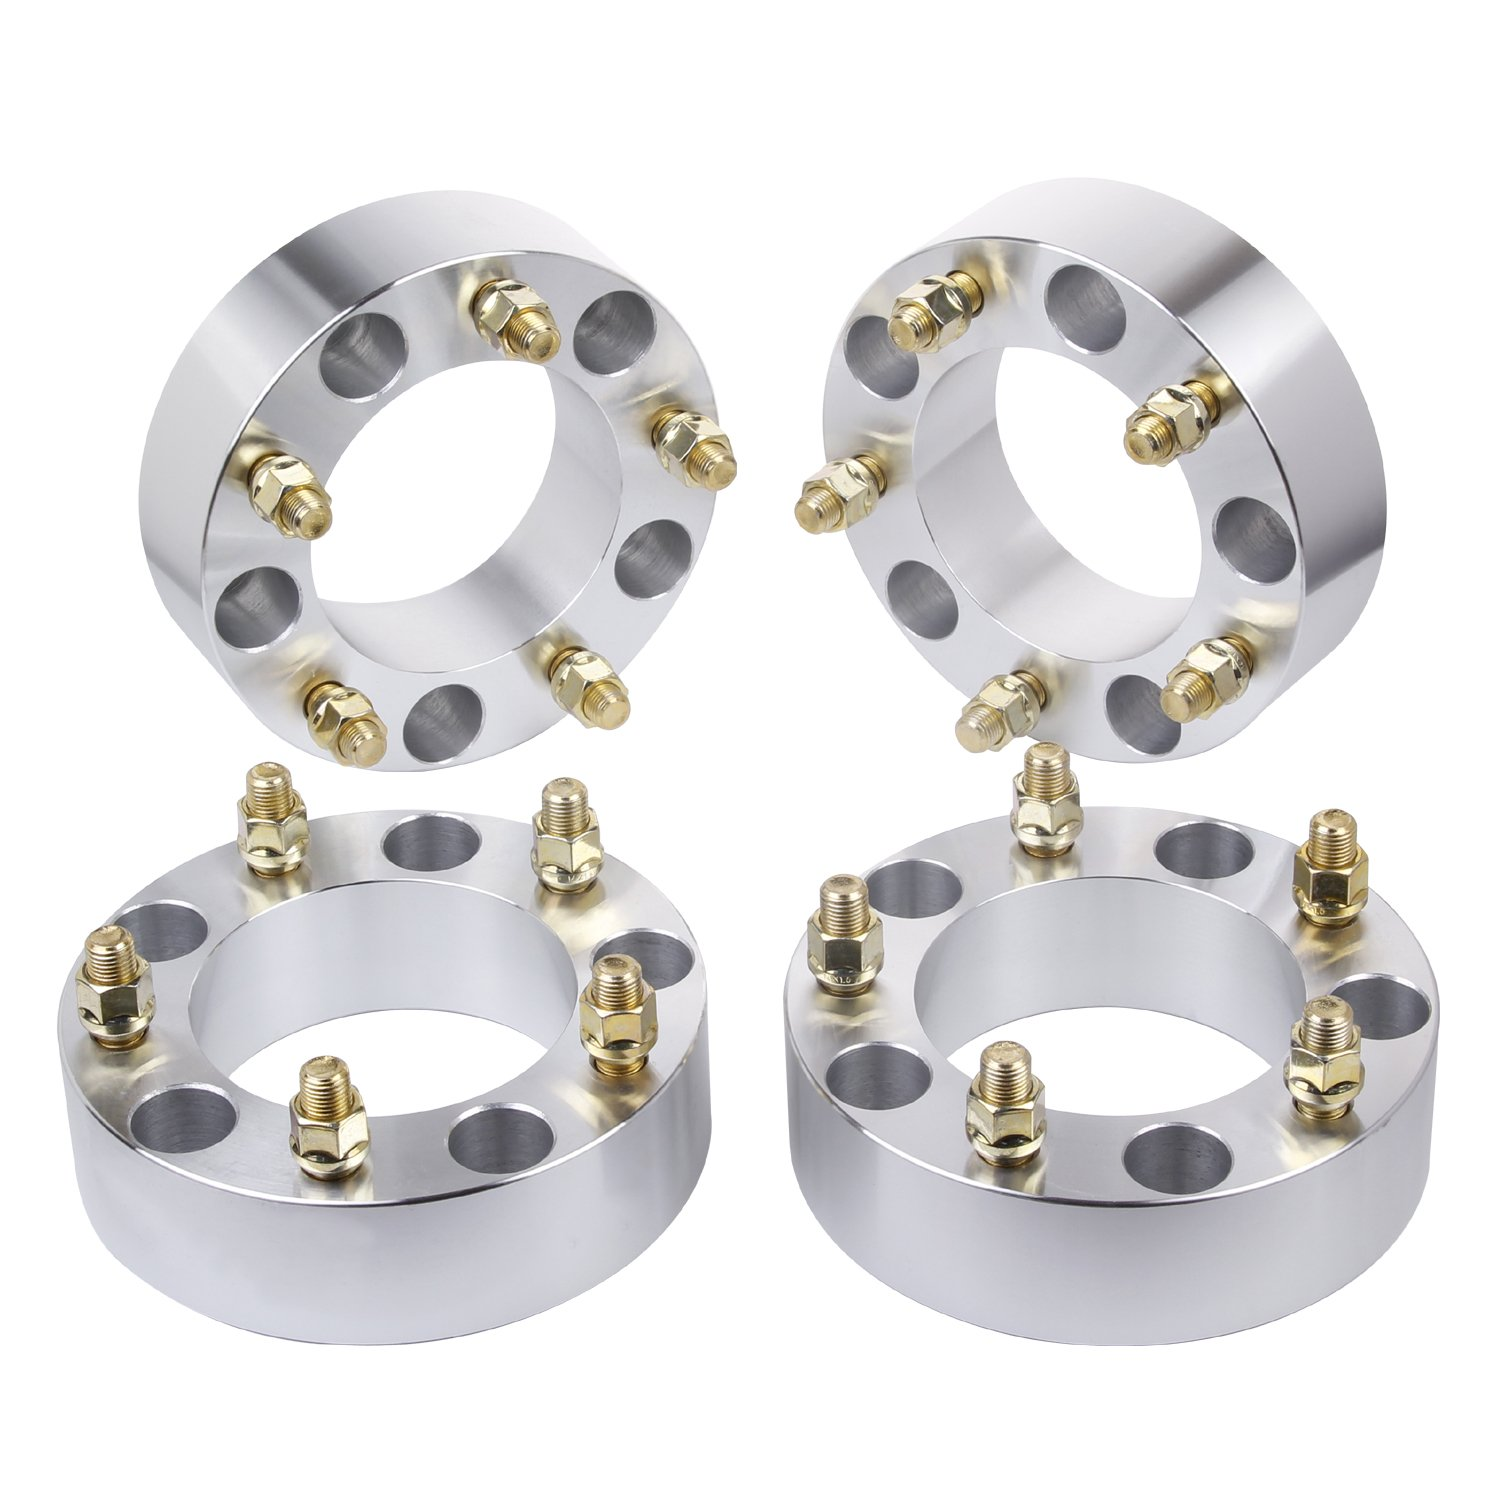 HLZZ SLL-017 4pc 2' Black Toyota Wheel Spacers Adapters 5 Lug 5x150 for 2007-2016 Tundra with 14x1.5 Studs (Silver)